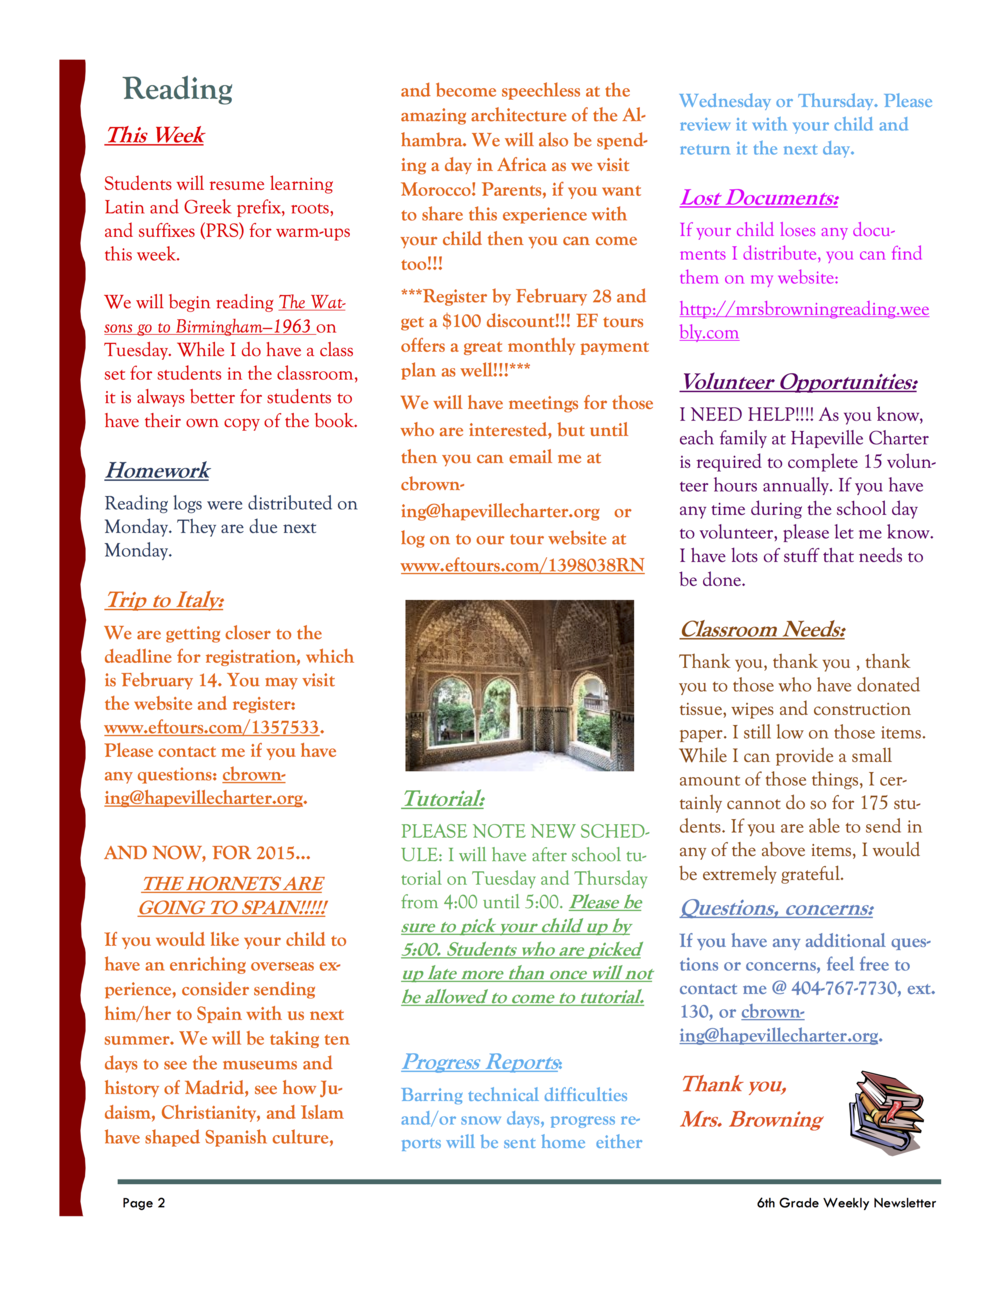 6th grade newsletter January 27-31B.png